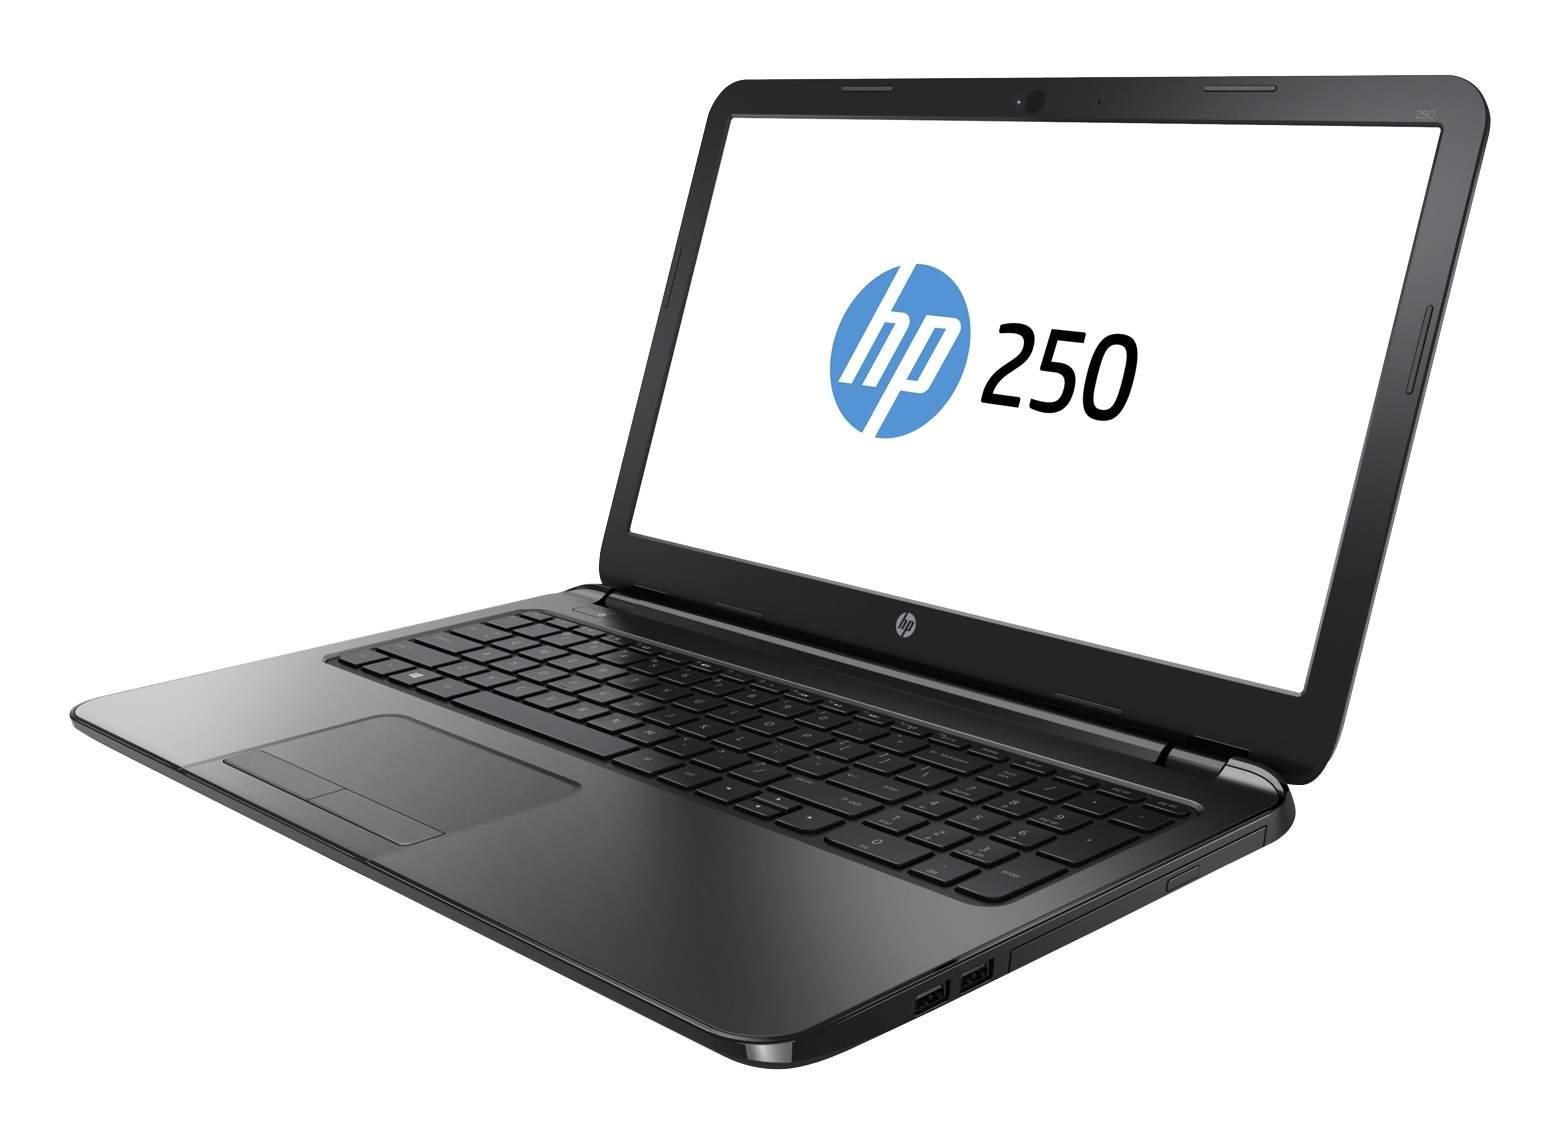 hp 250 g3 notebook review net reviews front